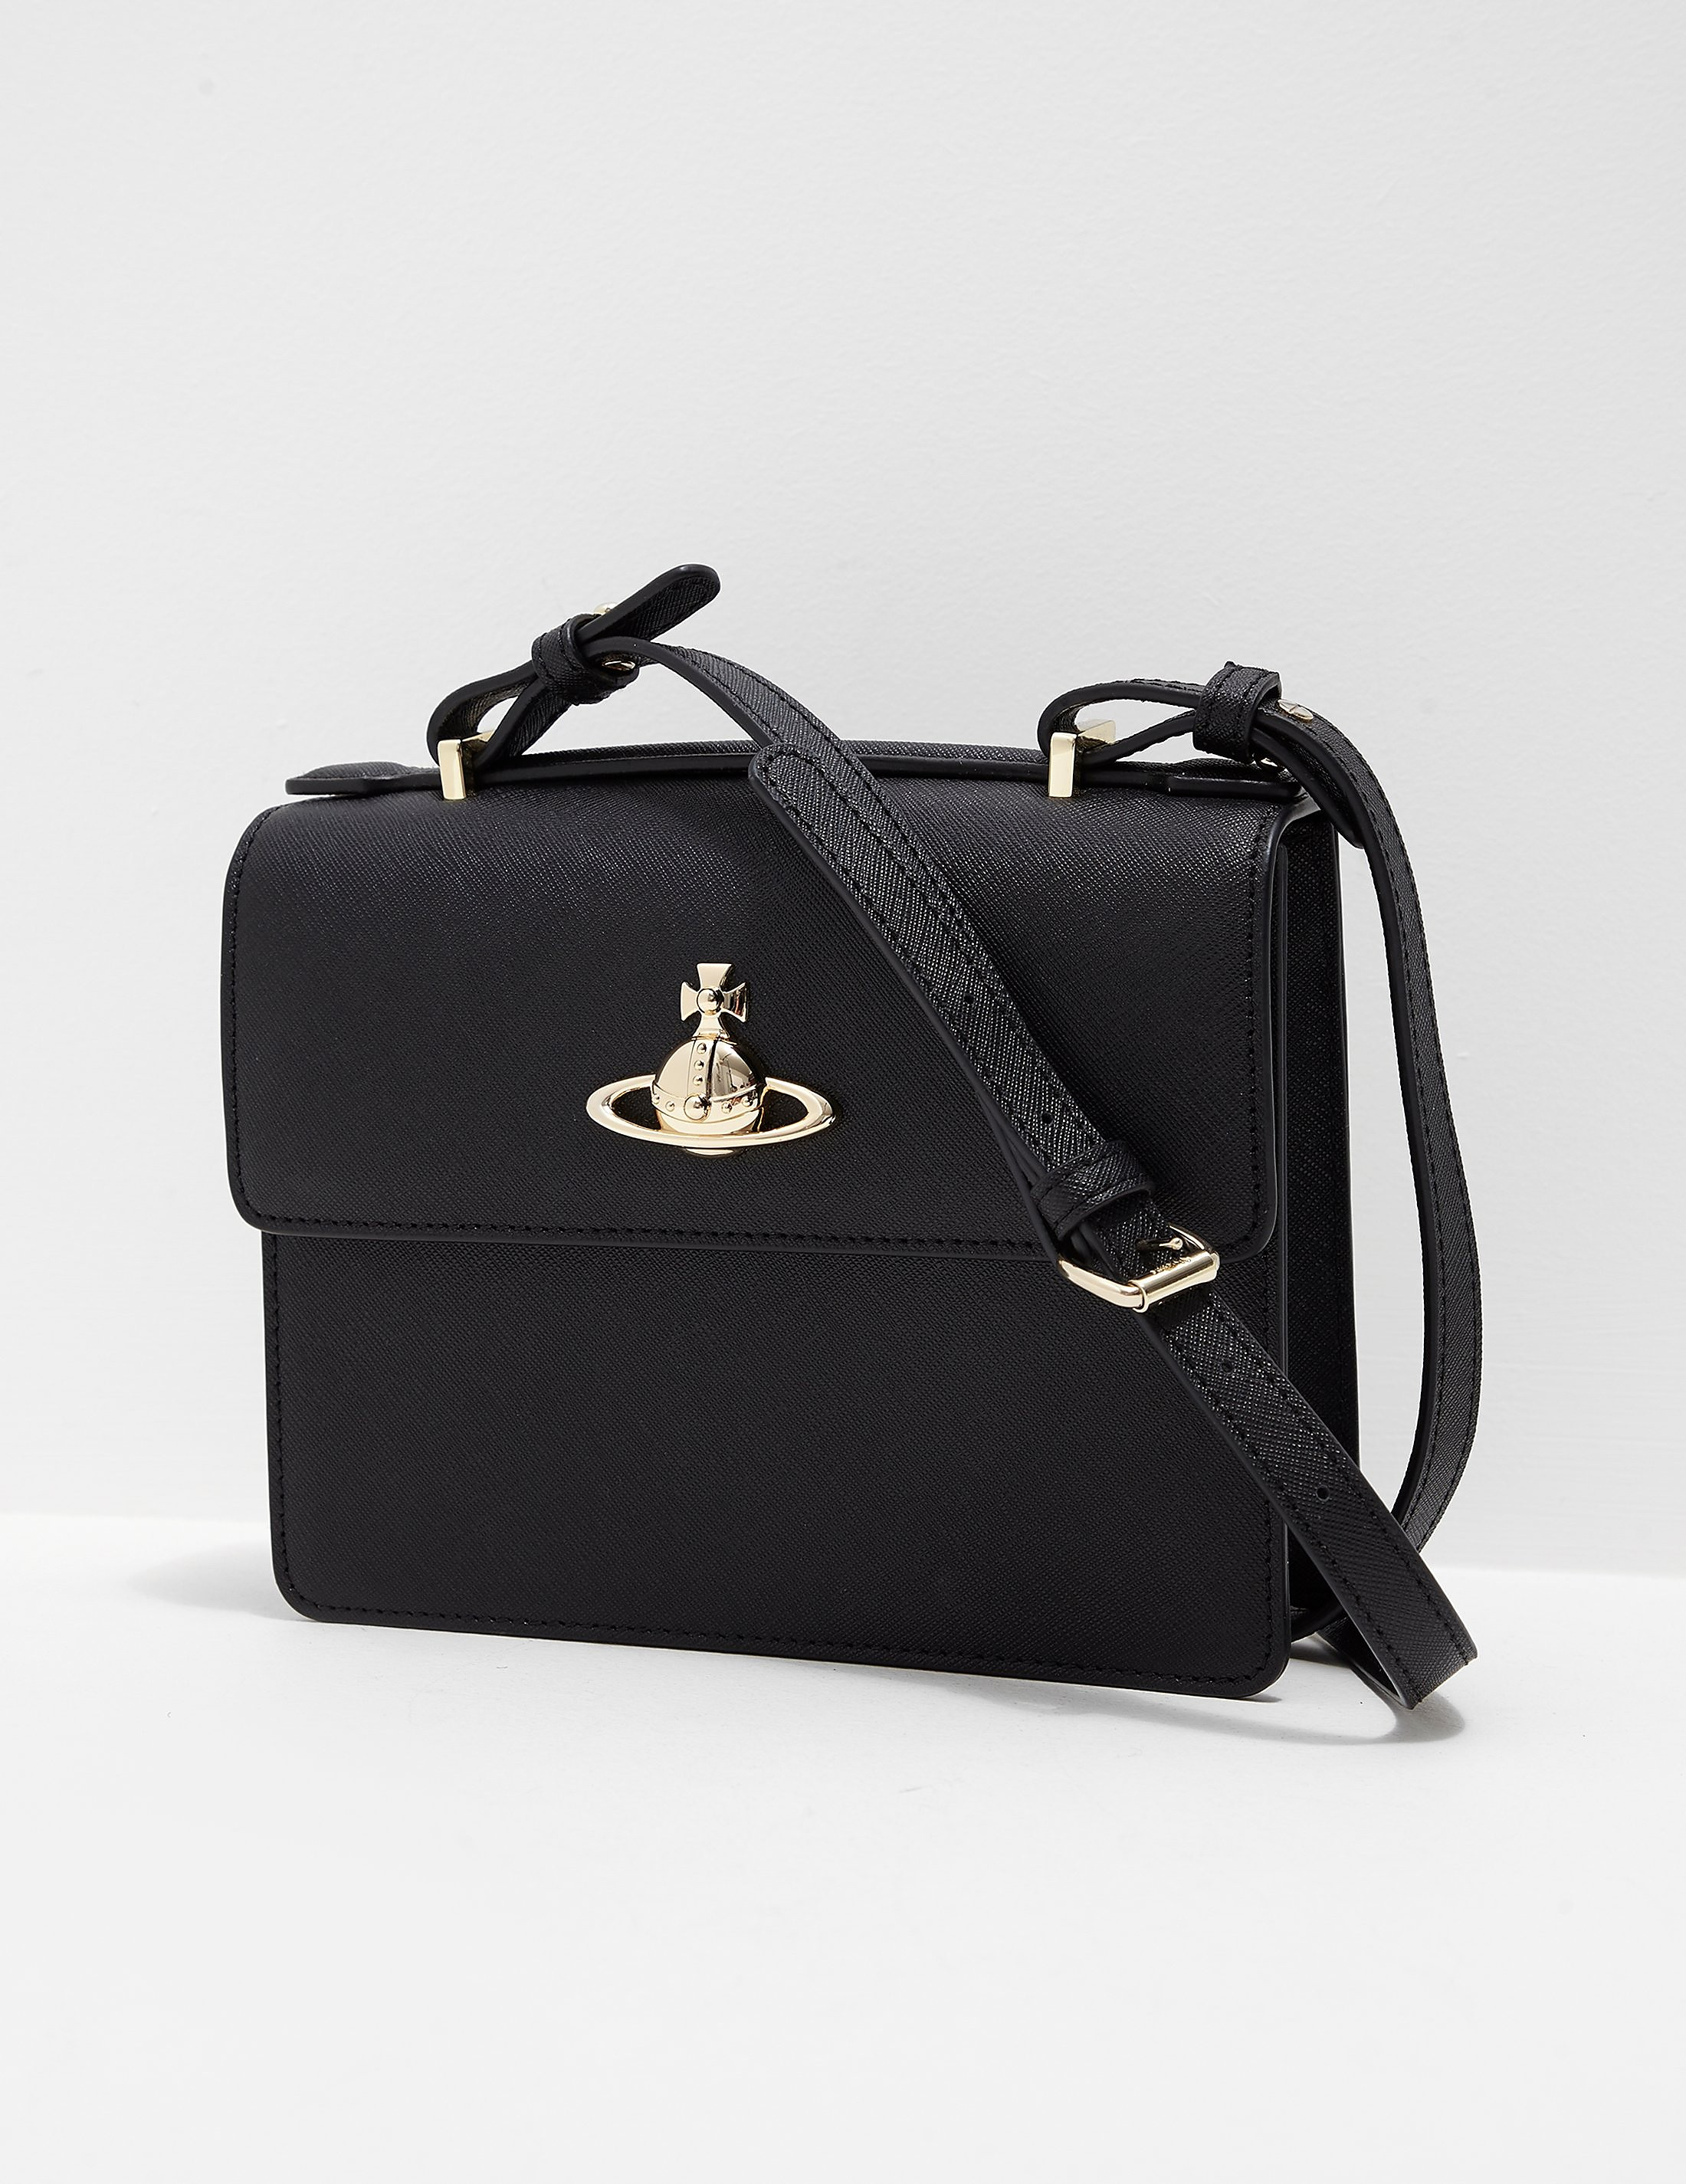 Vivienne Westwood Pimlico Shoulder Bag